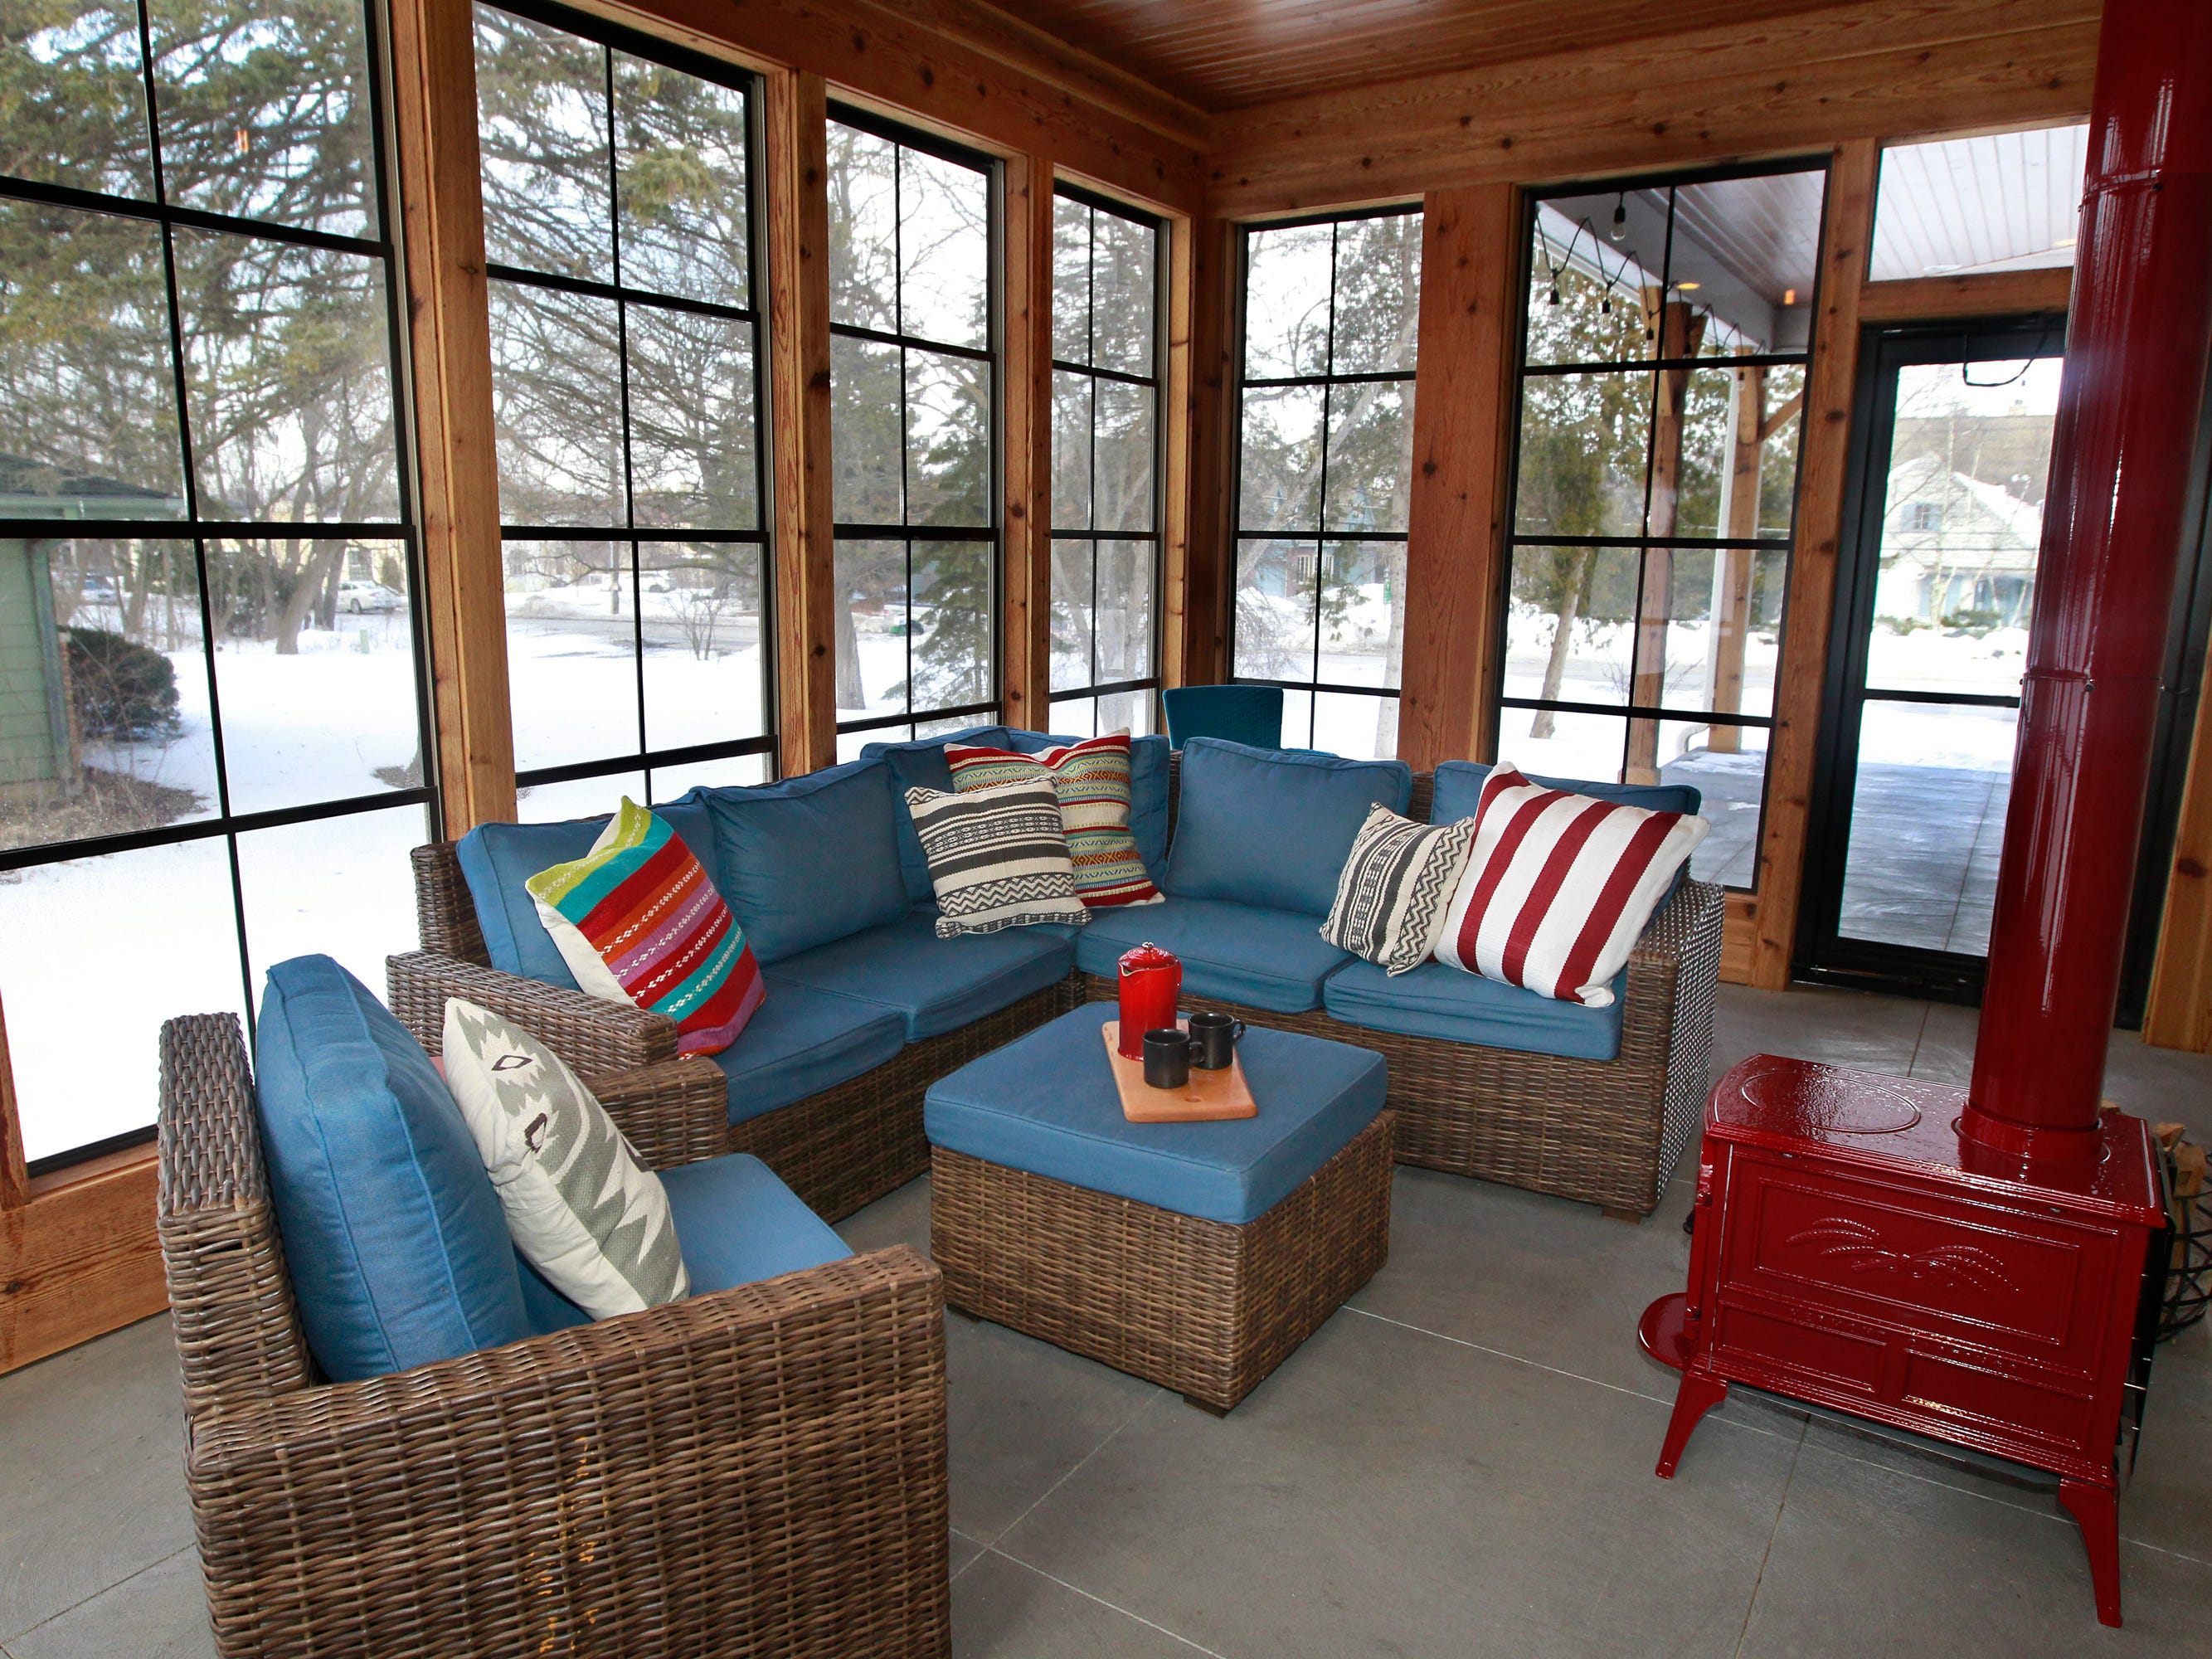 A three-season room is a favorite spot for family and friends to gather. It features cedar wood and floor-to-ceiling windows and a red wood-burning stove.